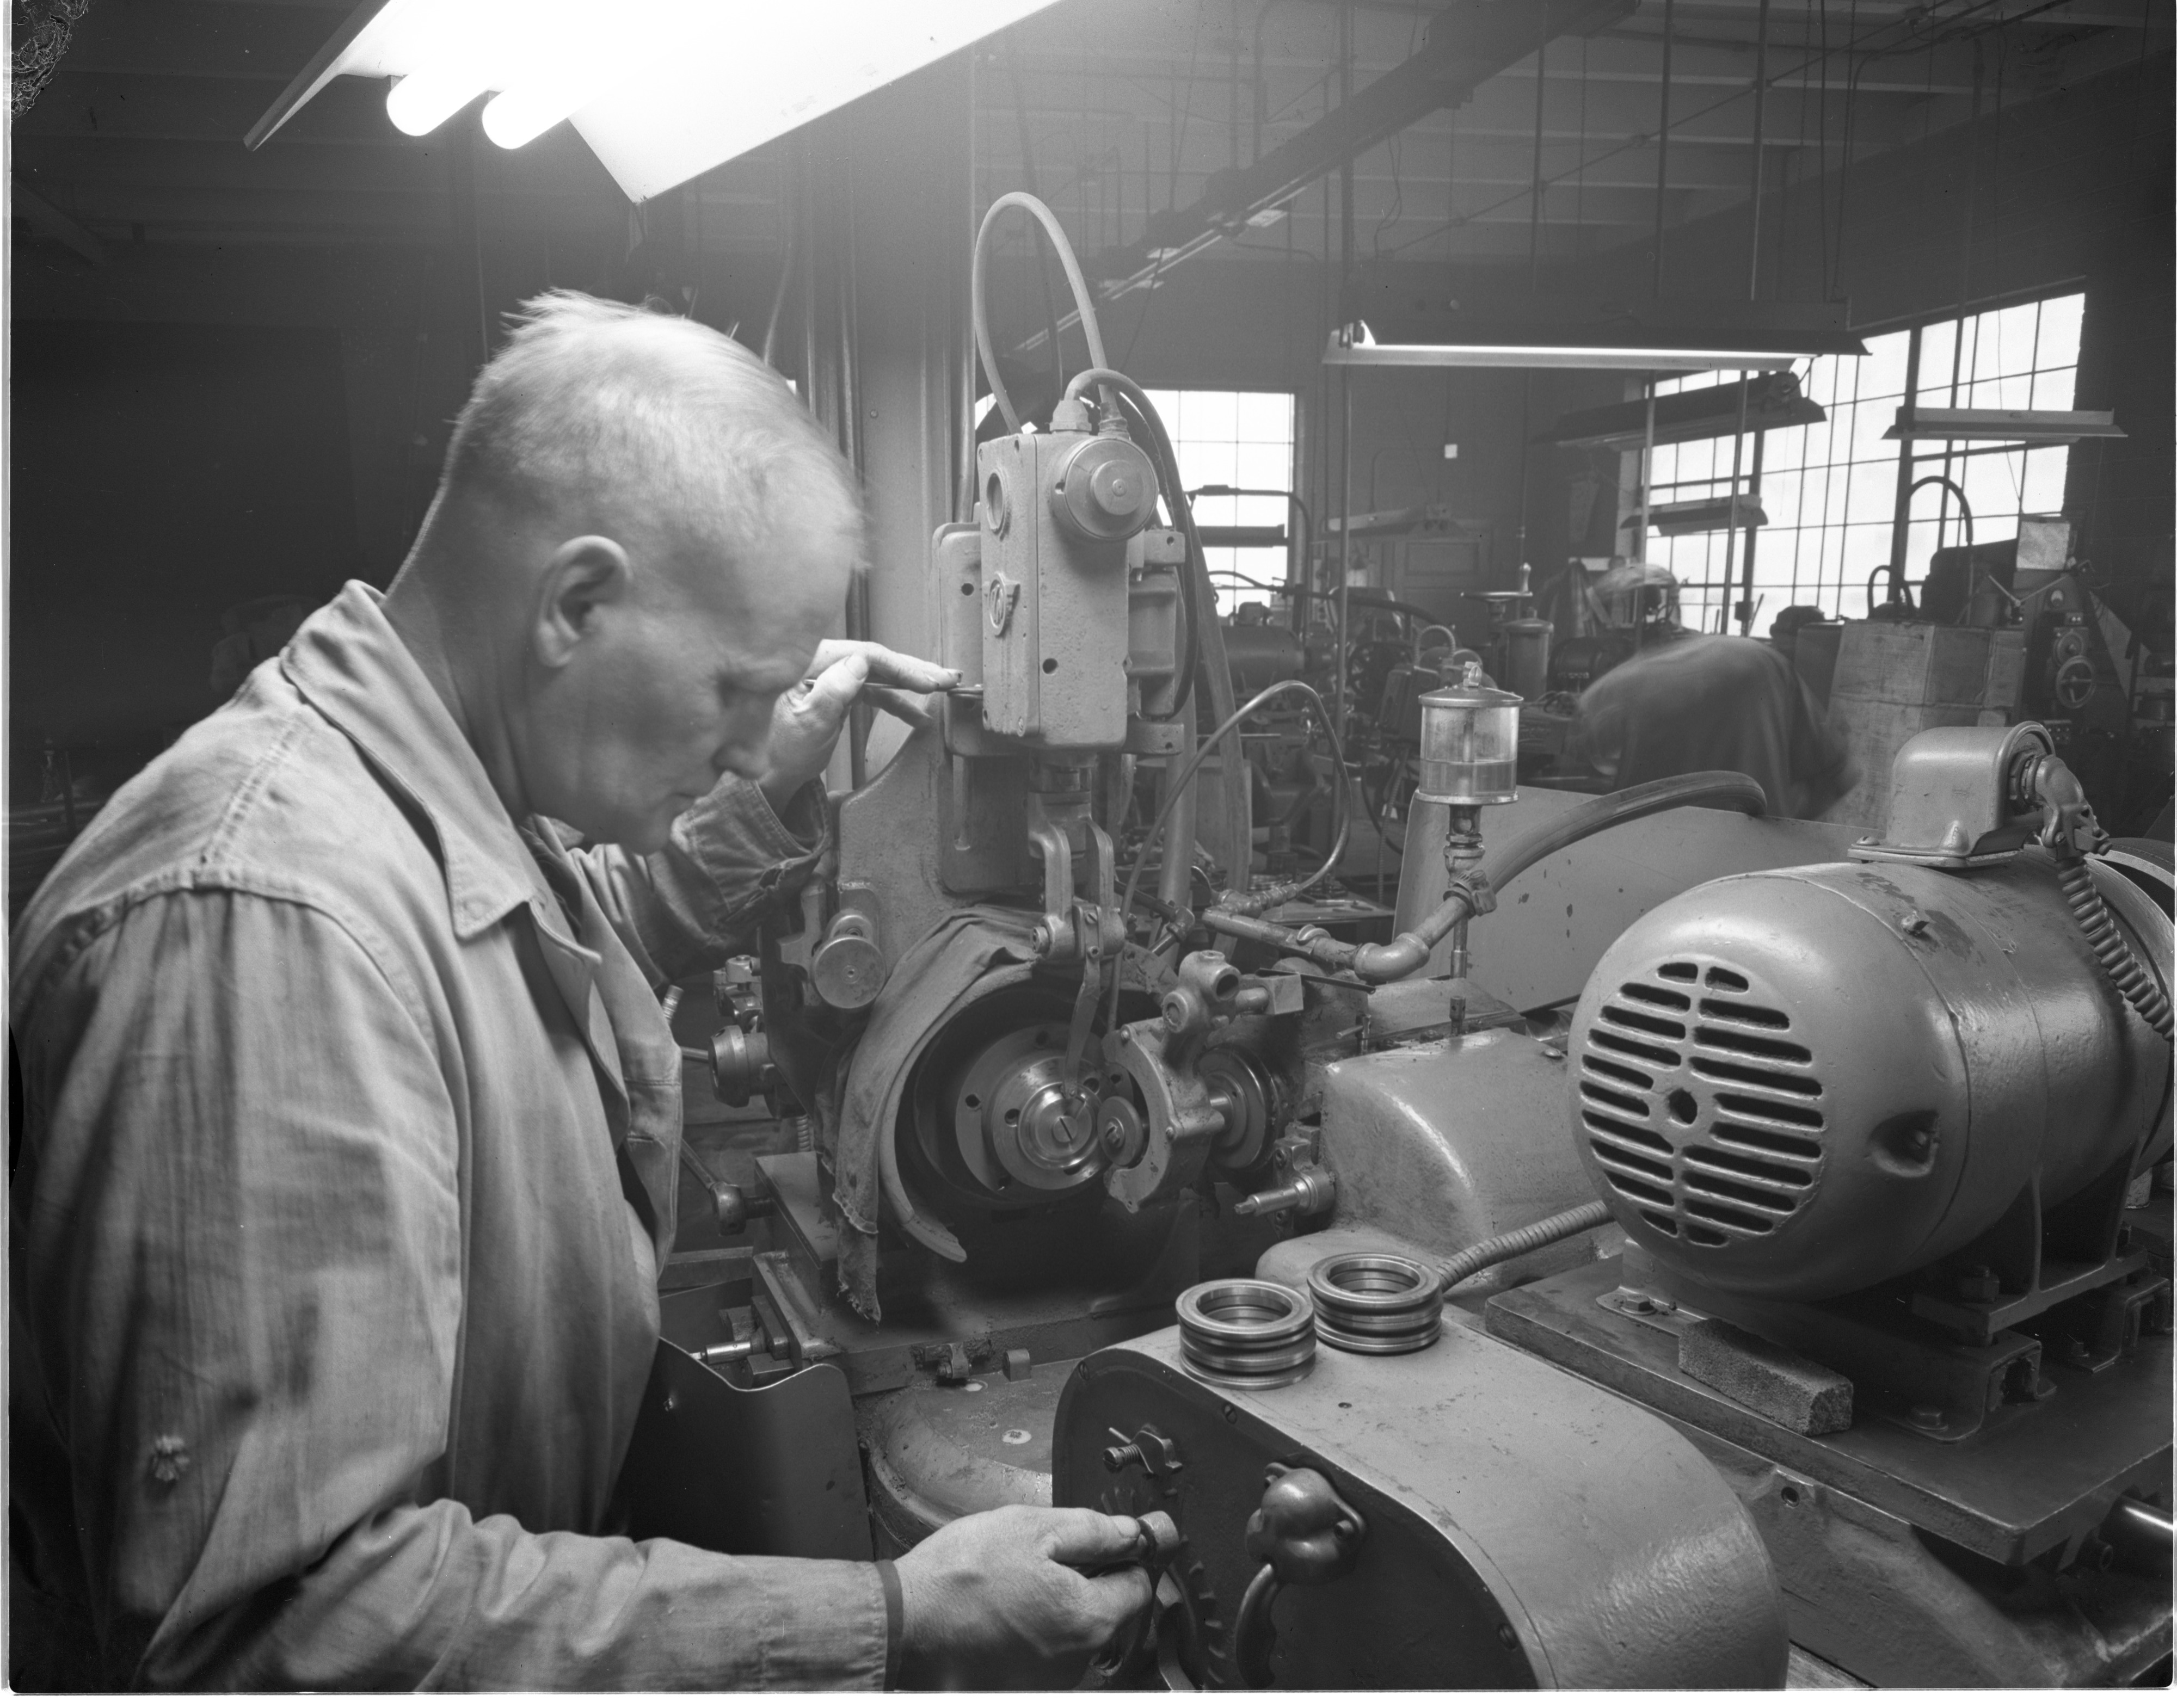 Clyde Hudson Grinds Bearings At The Morton Bearing Company, December 1954 image